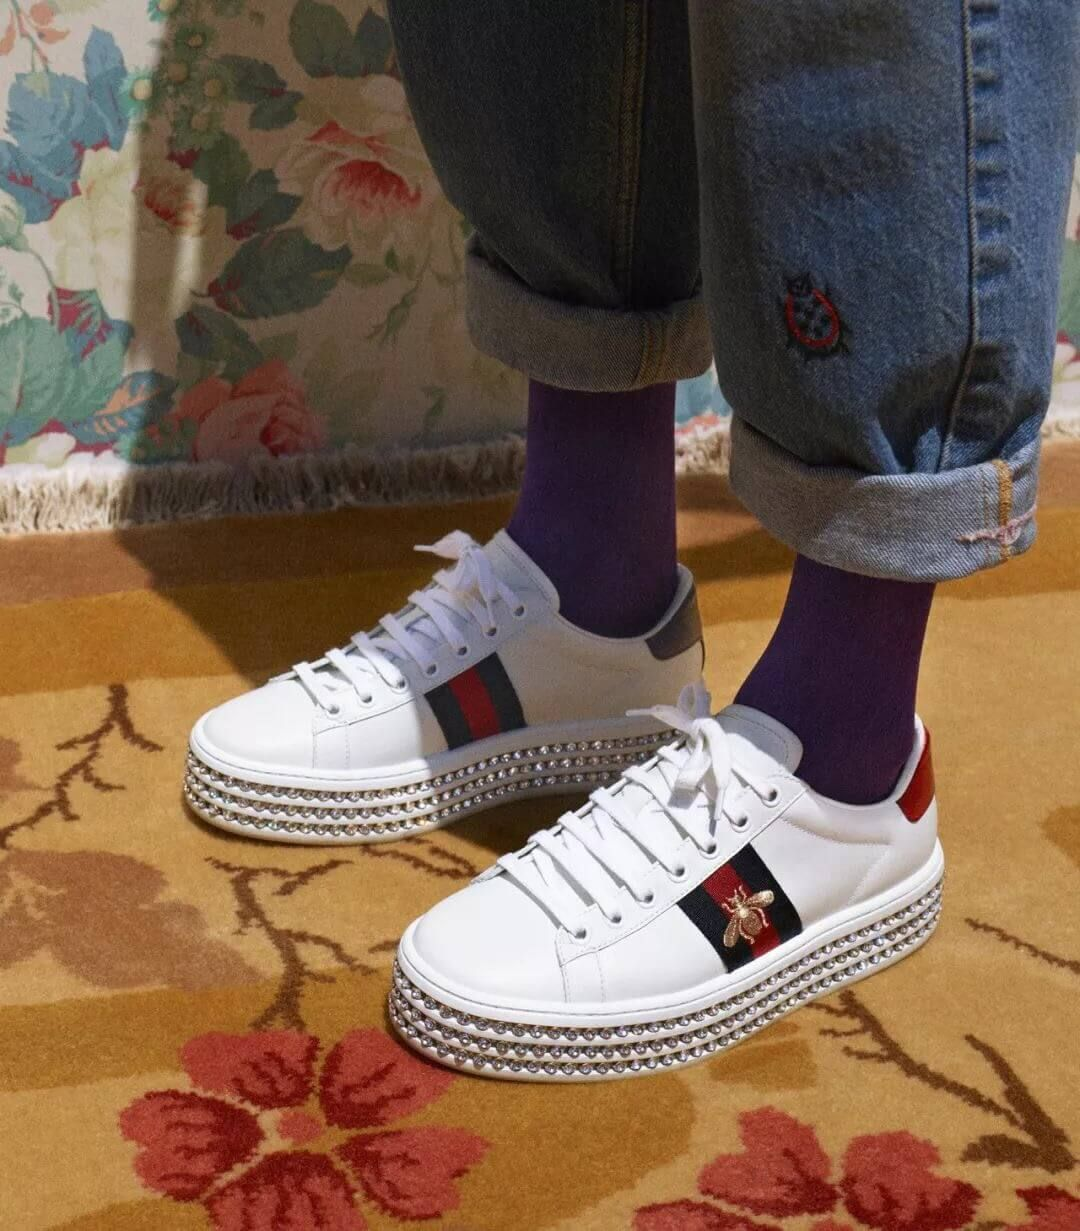 c44d317fb83 Gucci Ace Sneaker with Crystals 505995 2018